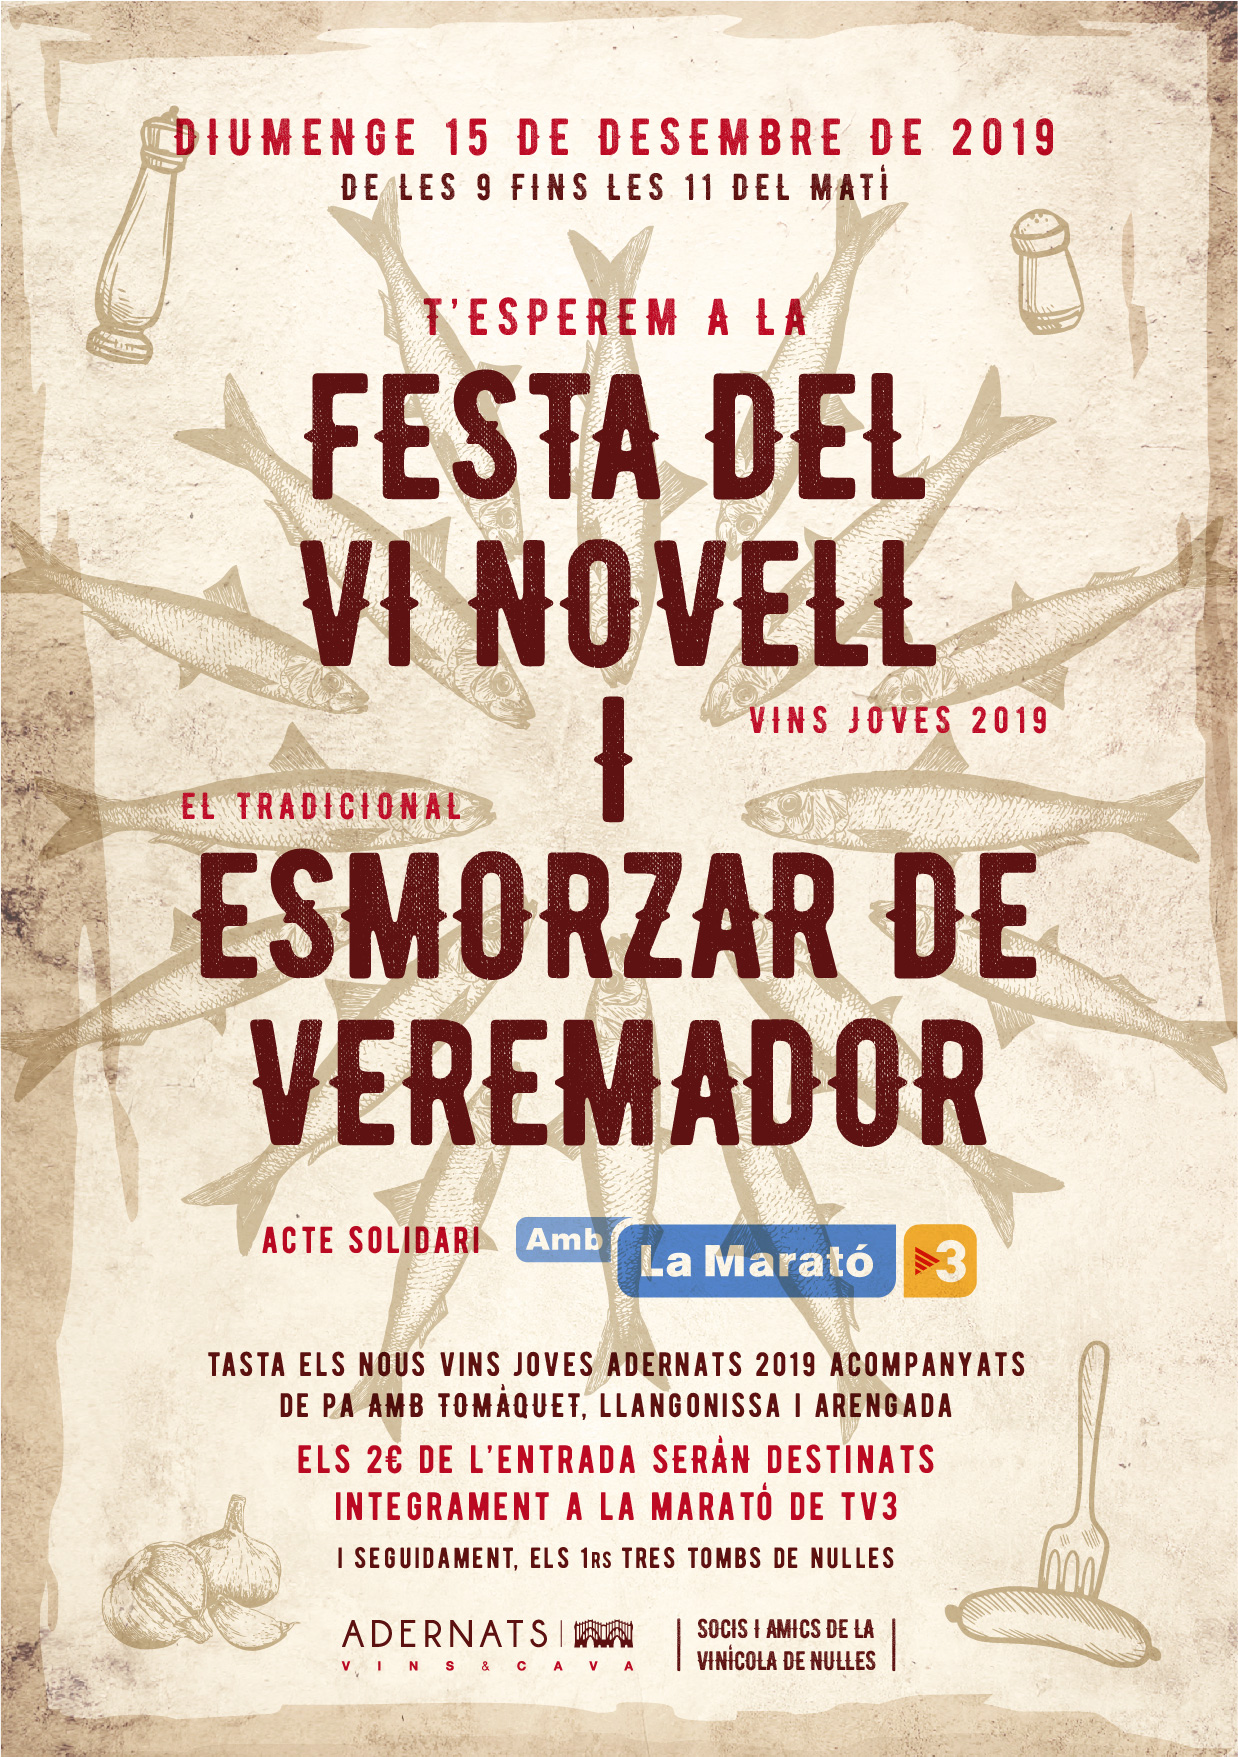 XXIV Adernats Novell Wine Festival in solidarity with the Tv3 Marathon